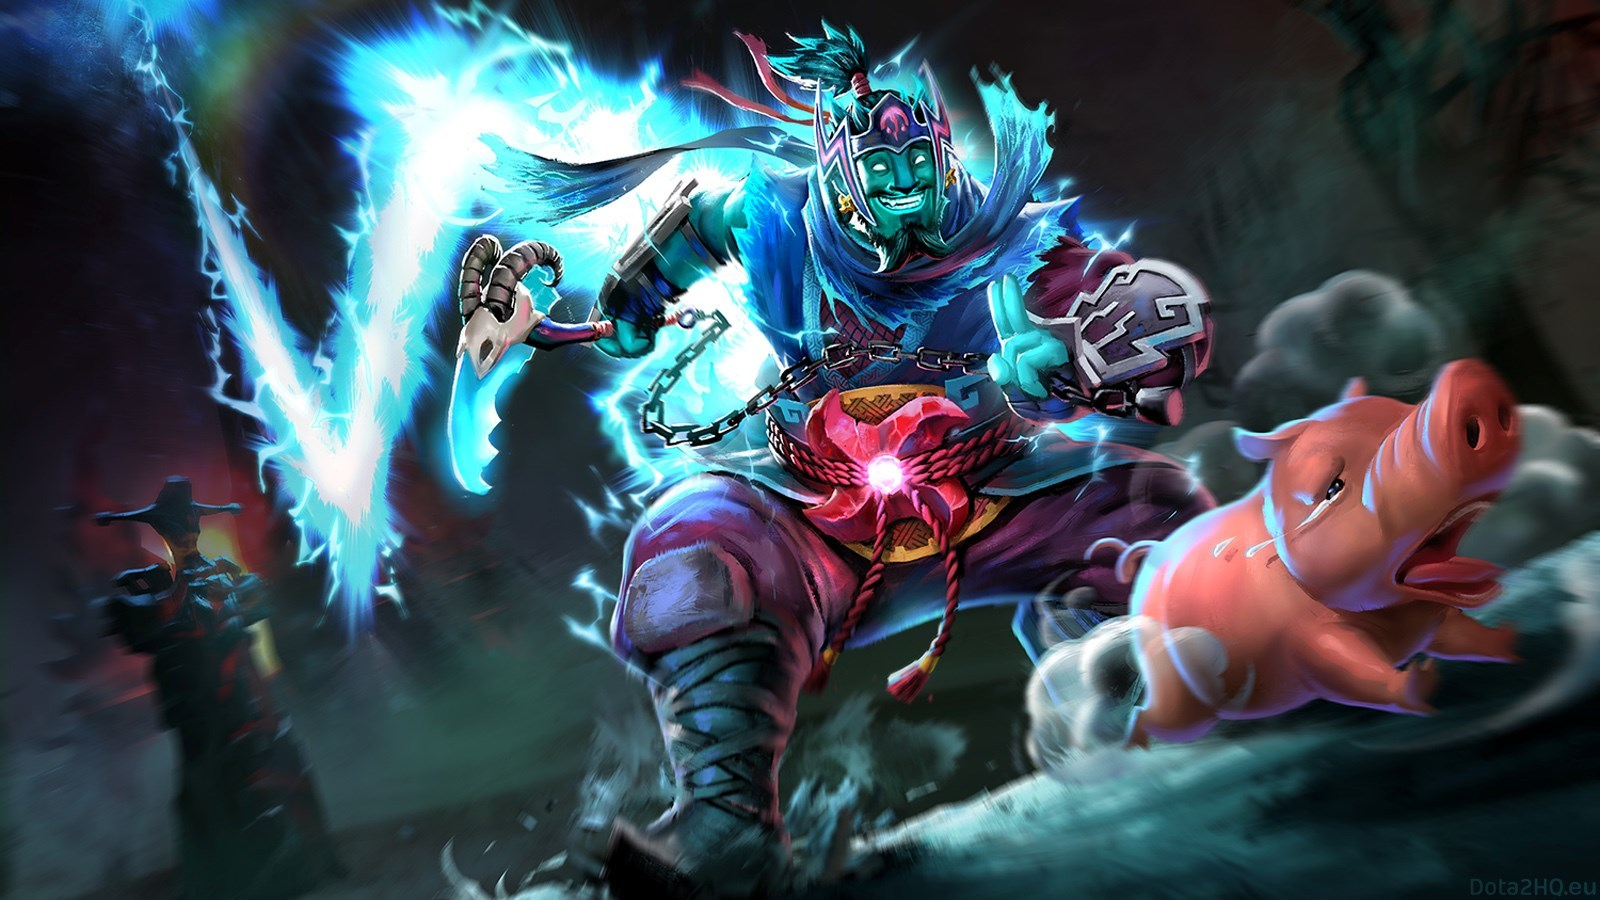 http://dota2-i.ru/assets/images/resources/1679/1600x900-2040584-storm-spirit-dota-2-wallpaper-hd.jpg